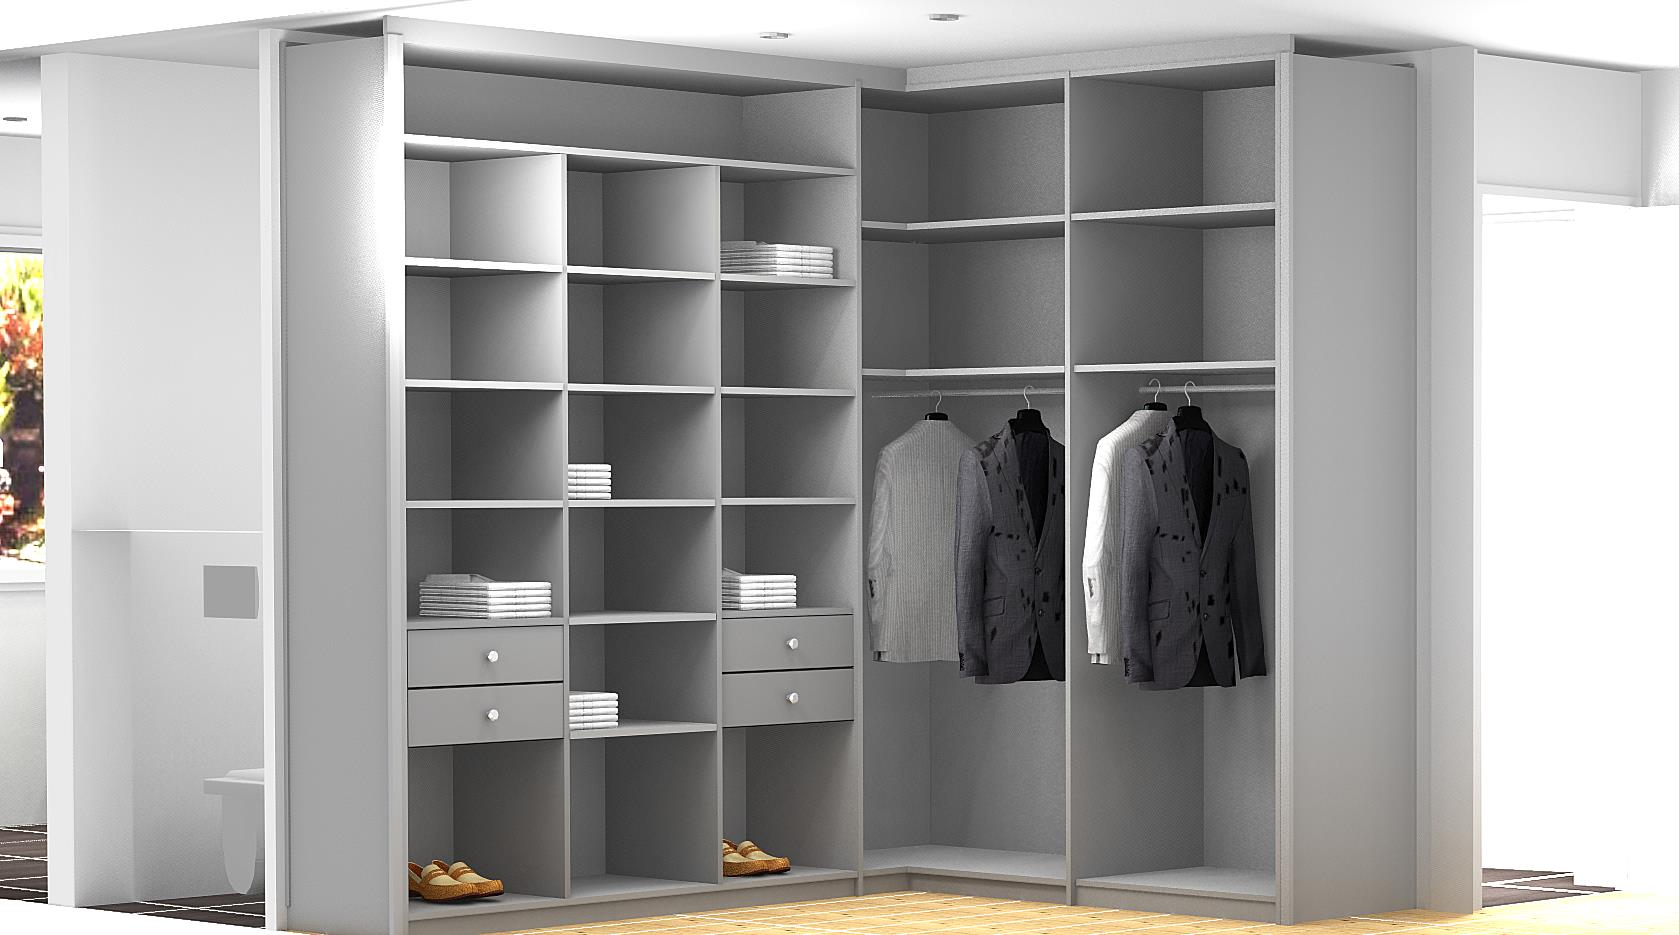 Pers dressing 3D